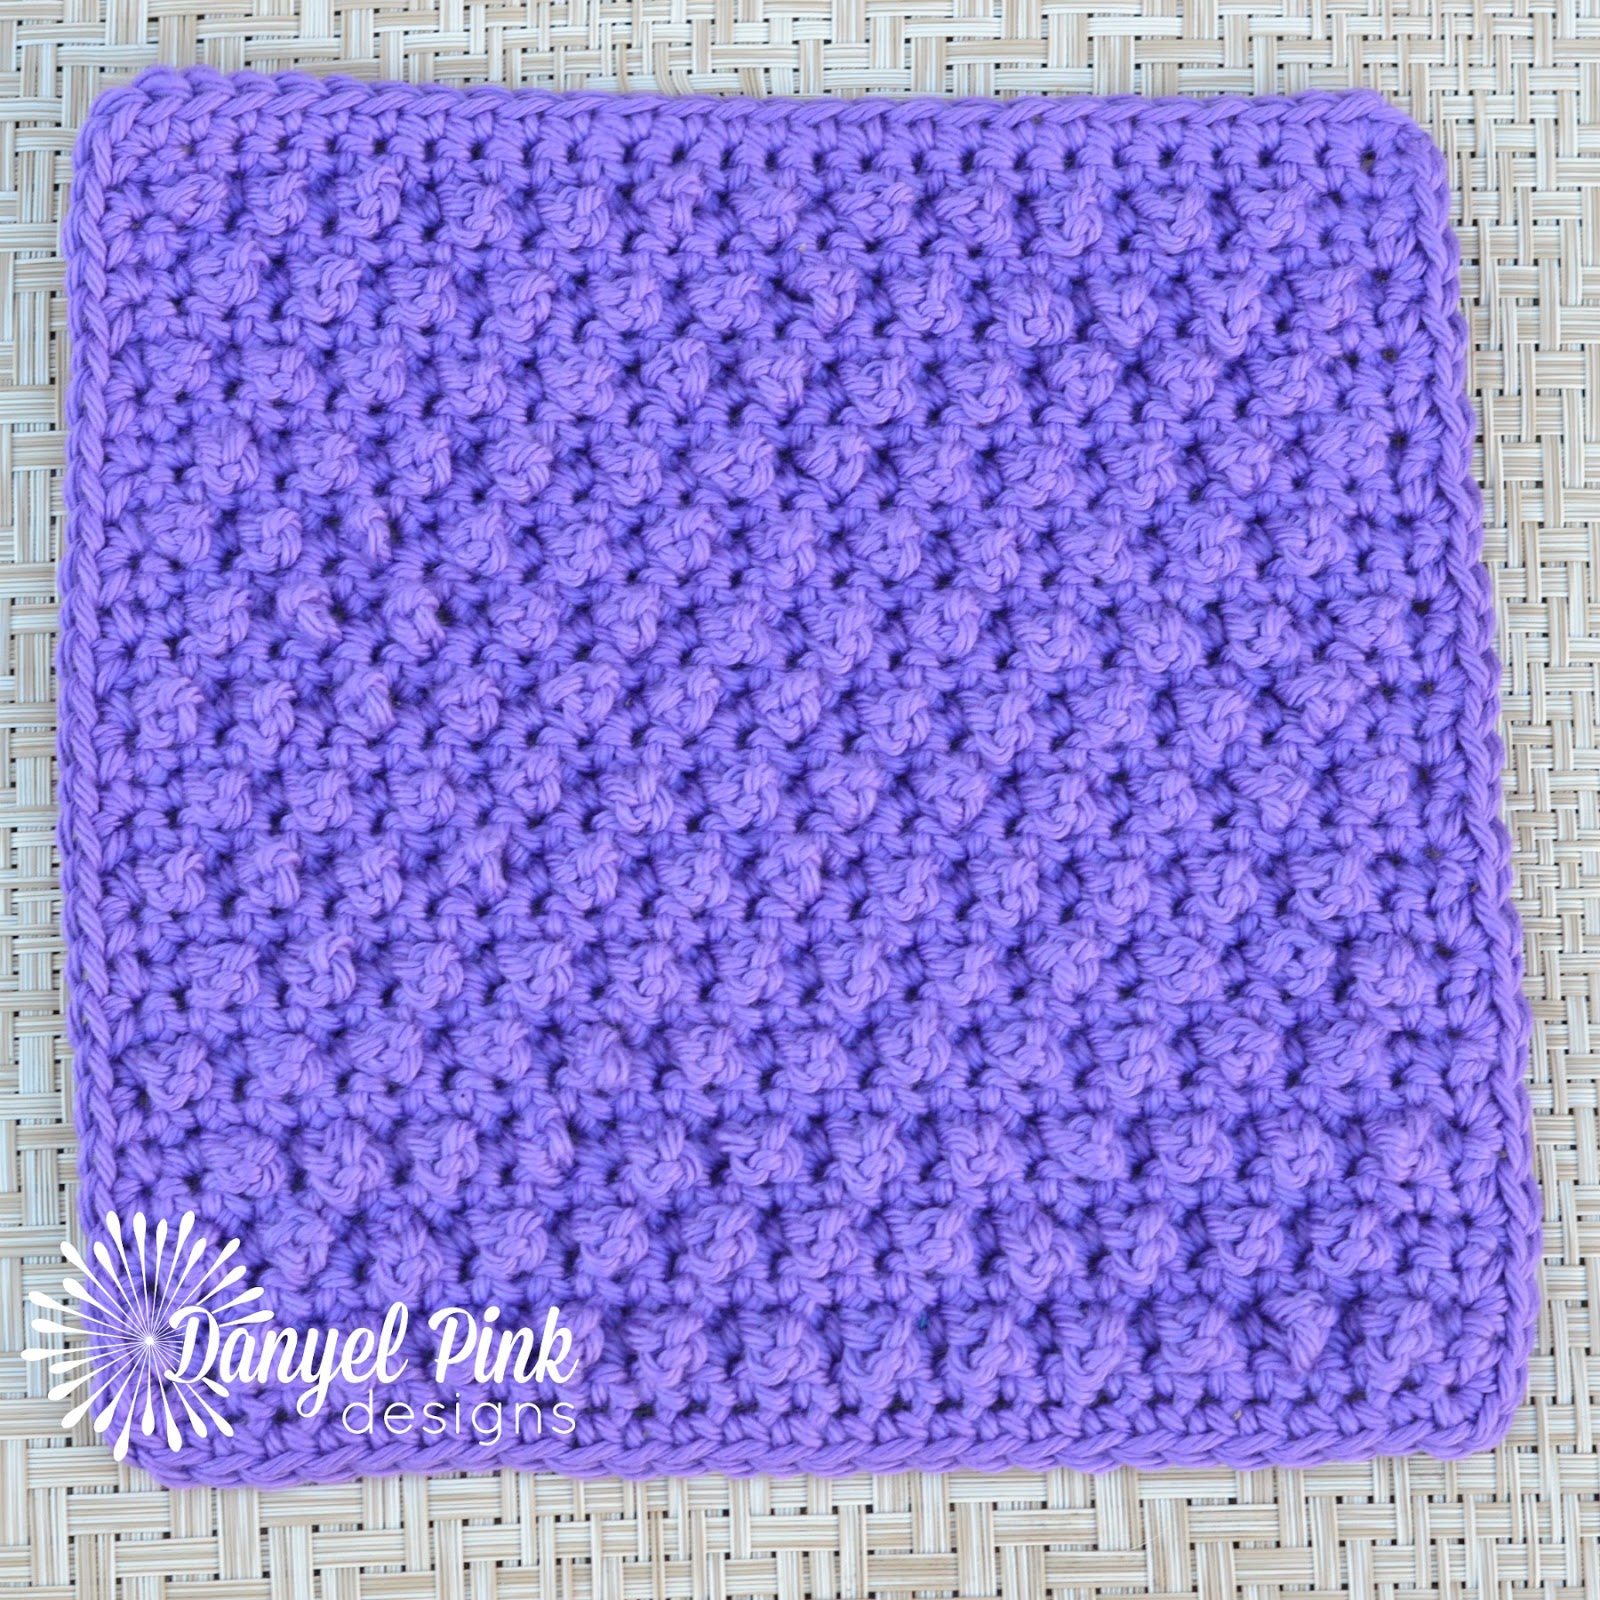 Danyel Pink Designs: CROCHET PATTERN - Blackberry Dishcloth